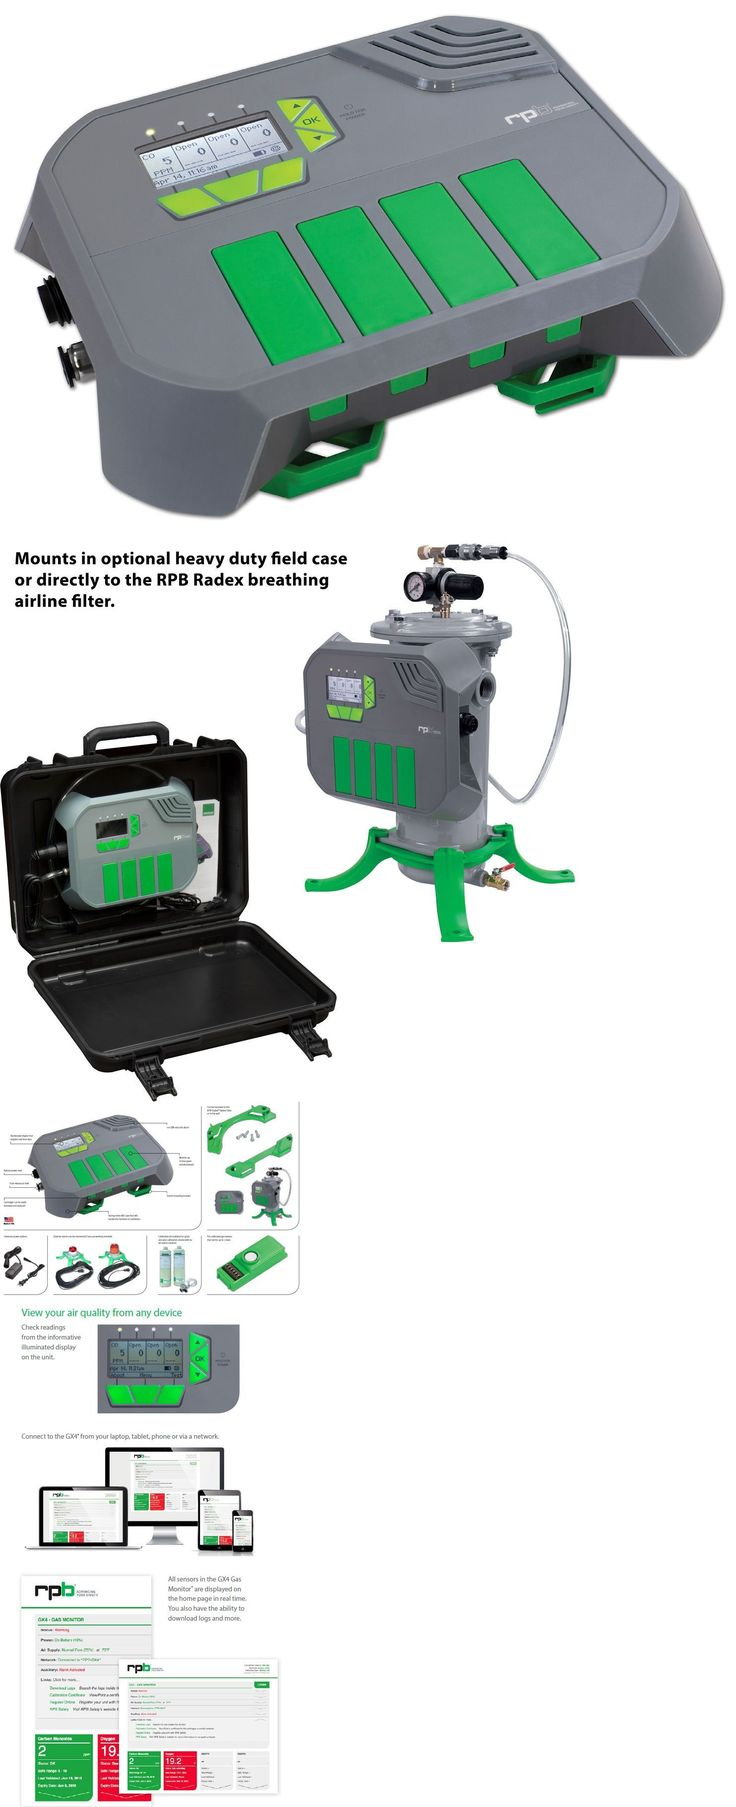 Masks Respirators and Helmets 43617: Rpb Gx4 Co Monitor With 120V Ac Adaptor, Can Detect 4 Gases Simultaneously -> BUY IT NOW ONLY: $1699 on eBay!